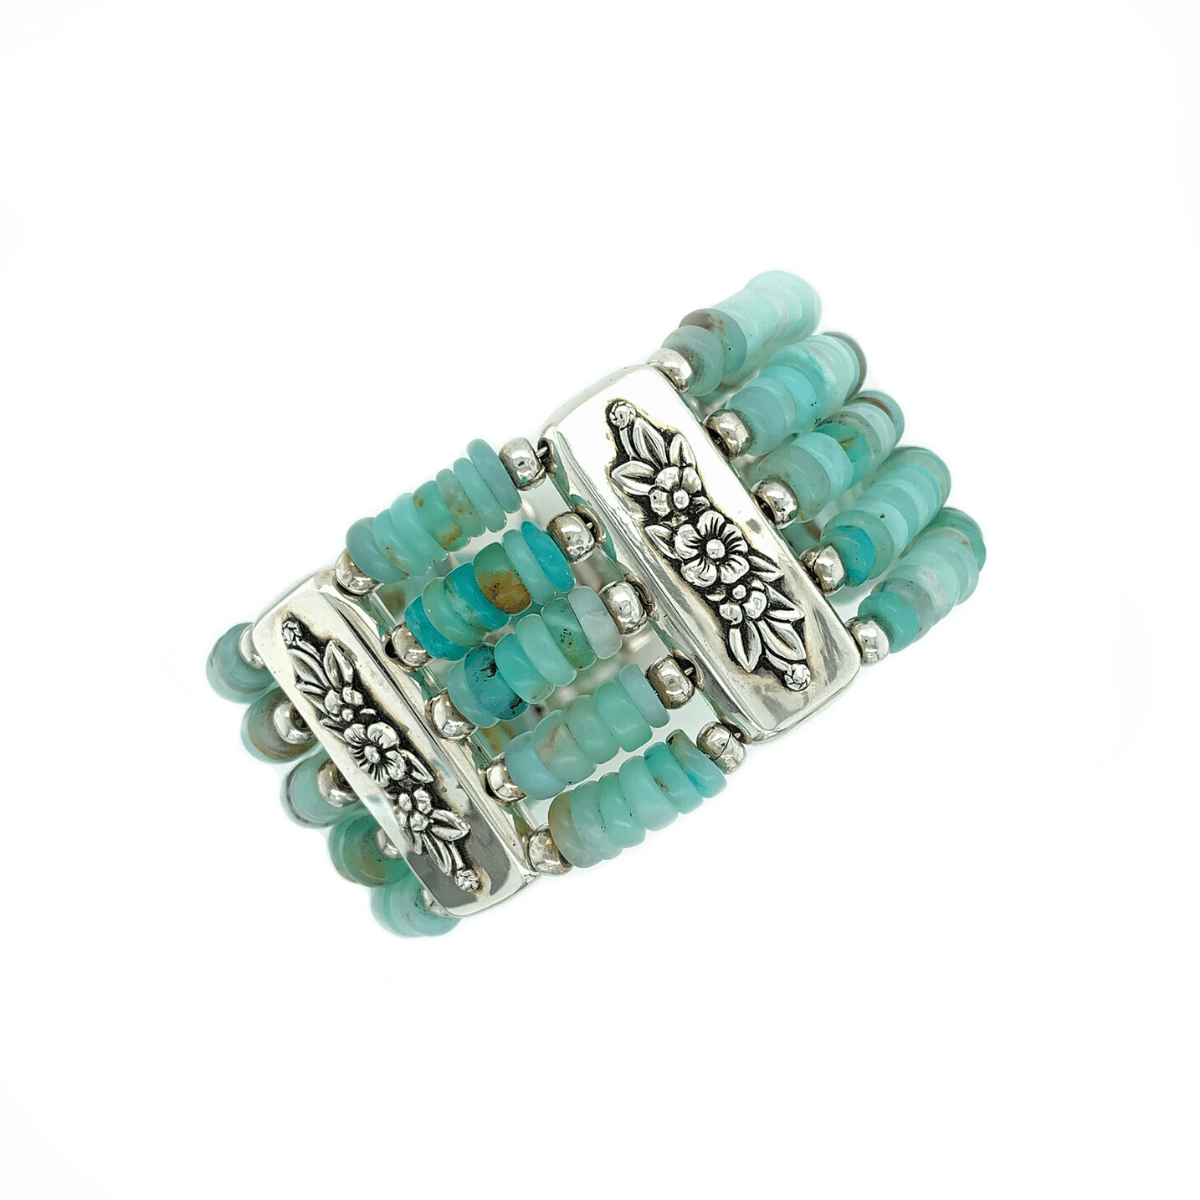 Andean Opal stacked beaded Bracelet Cuff in Sterling Silver - Qinti - The Peruvian Shop